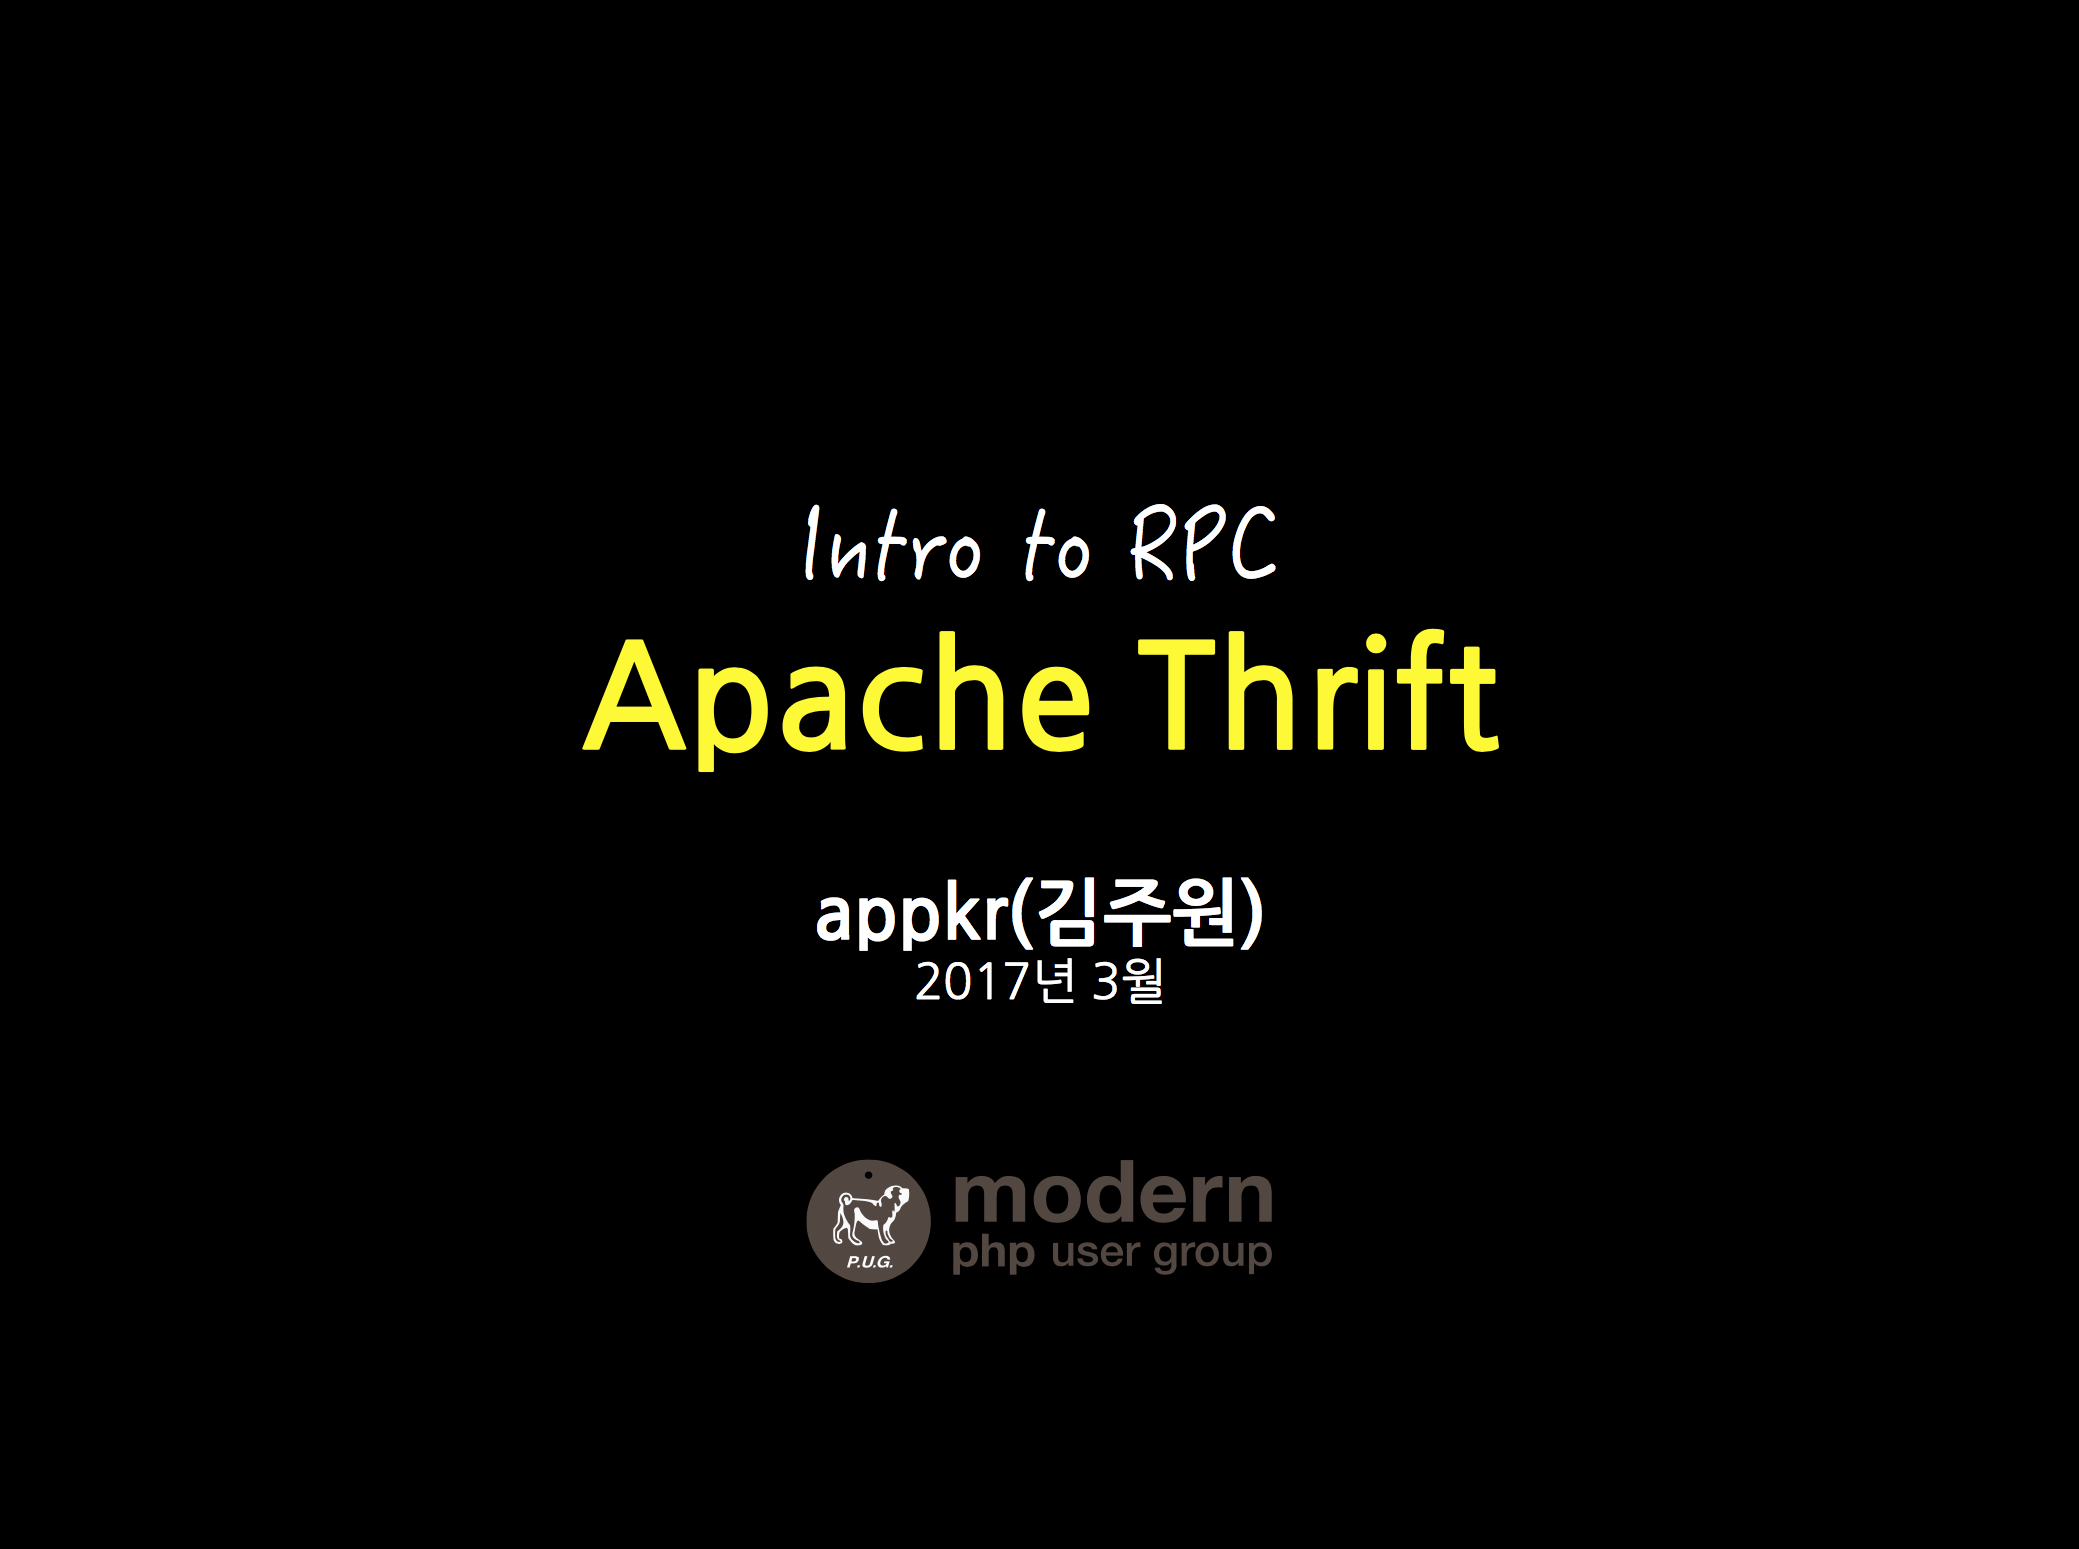 Intro to RPC - Apache Thrift